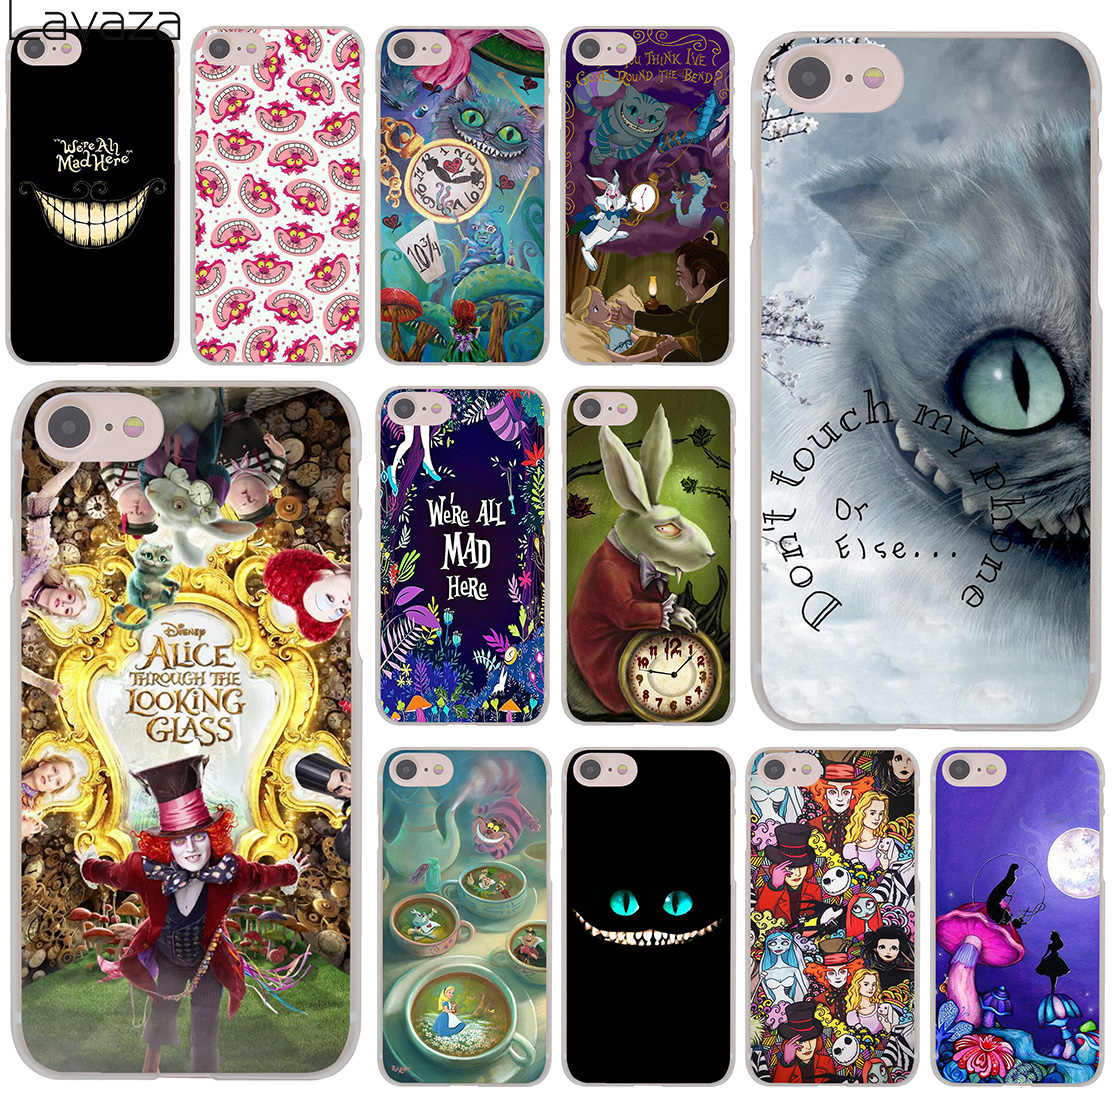 Lavaza Alice in Wonderland cat Hard Phone Cover Case for iPhone XR X 11 Pro XS Max 8 7 6 6S 5 5S SE 4S 4 10